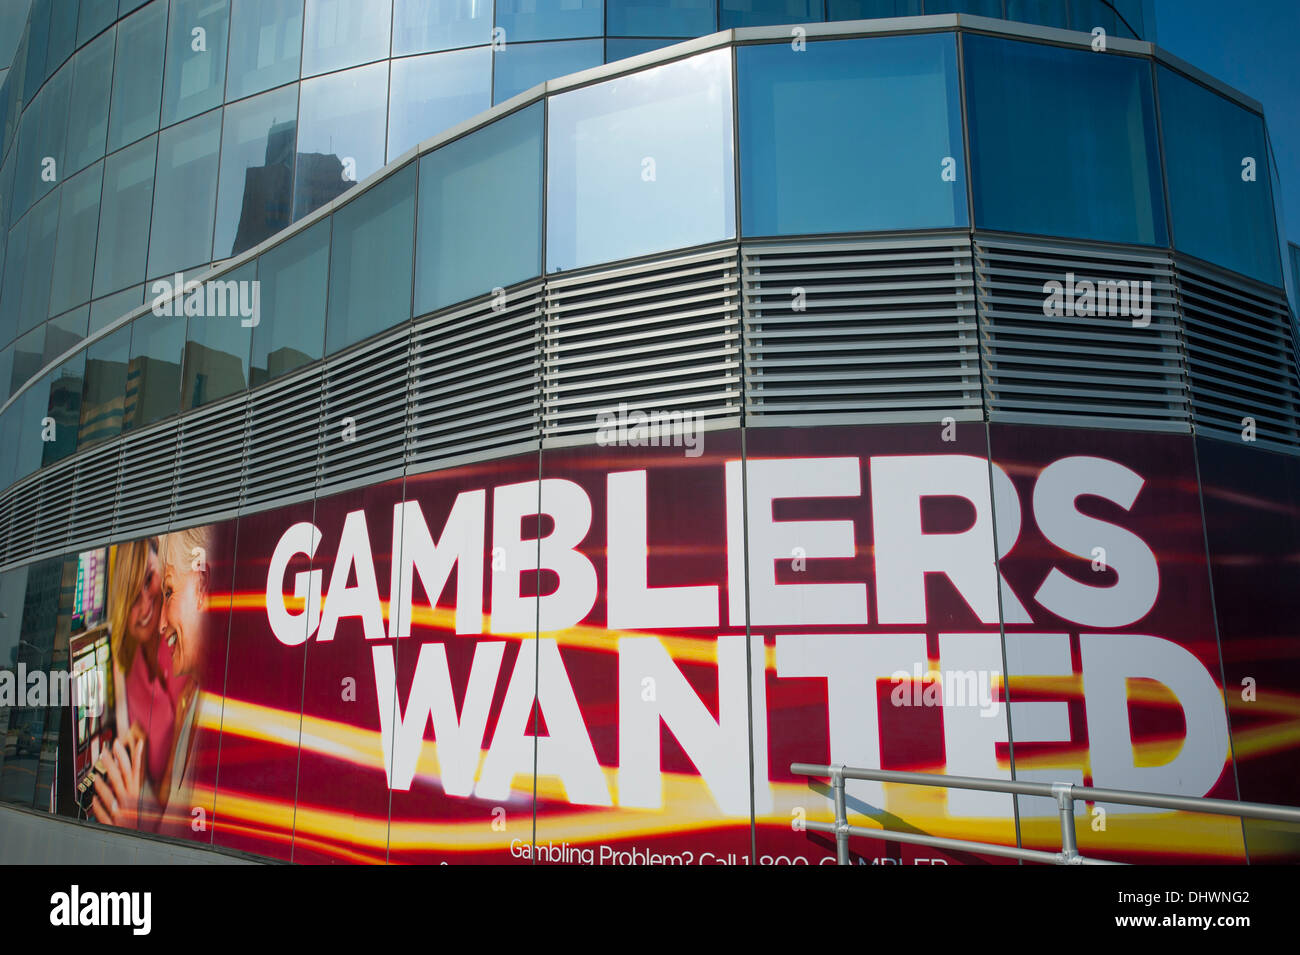 USA America American New Jersey NJ Gamblers Wanted sigh on the Revel Casino Hotel resort exterior - Stock Image